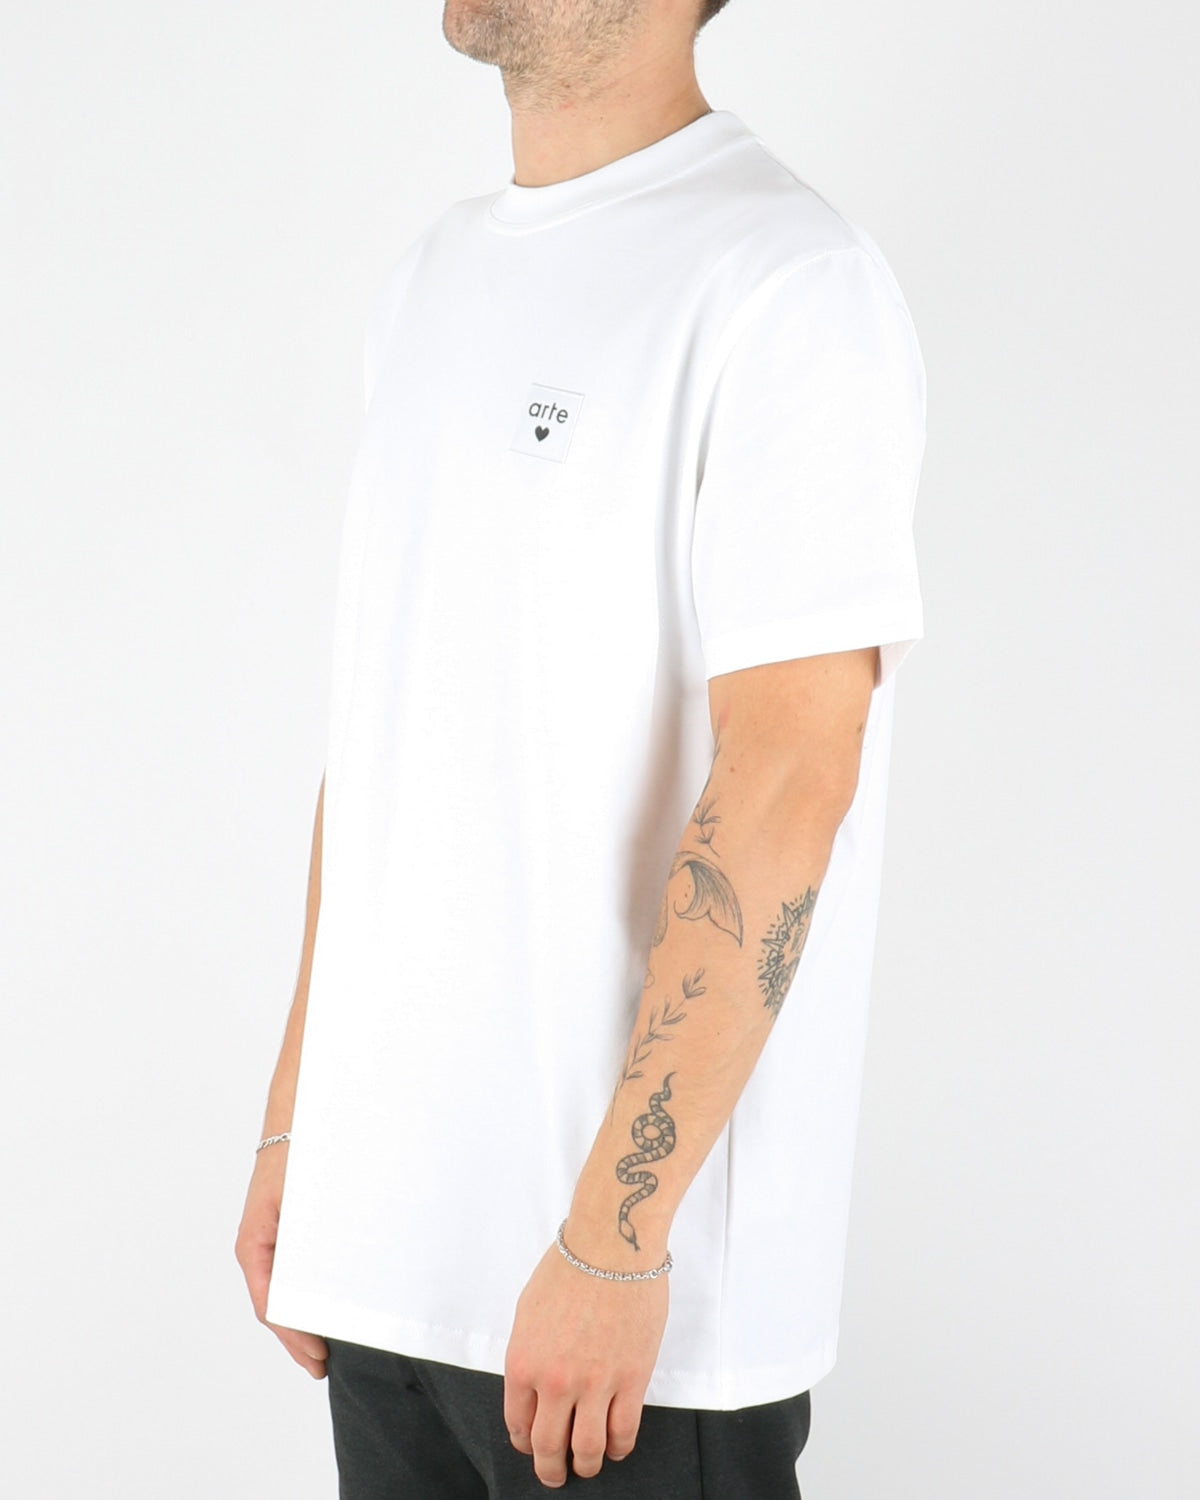 arte_toby heart label t-shirt_white_2_3